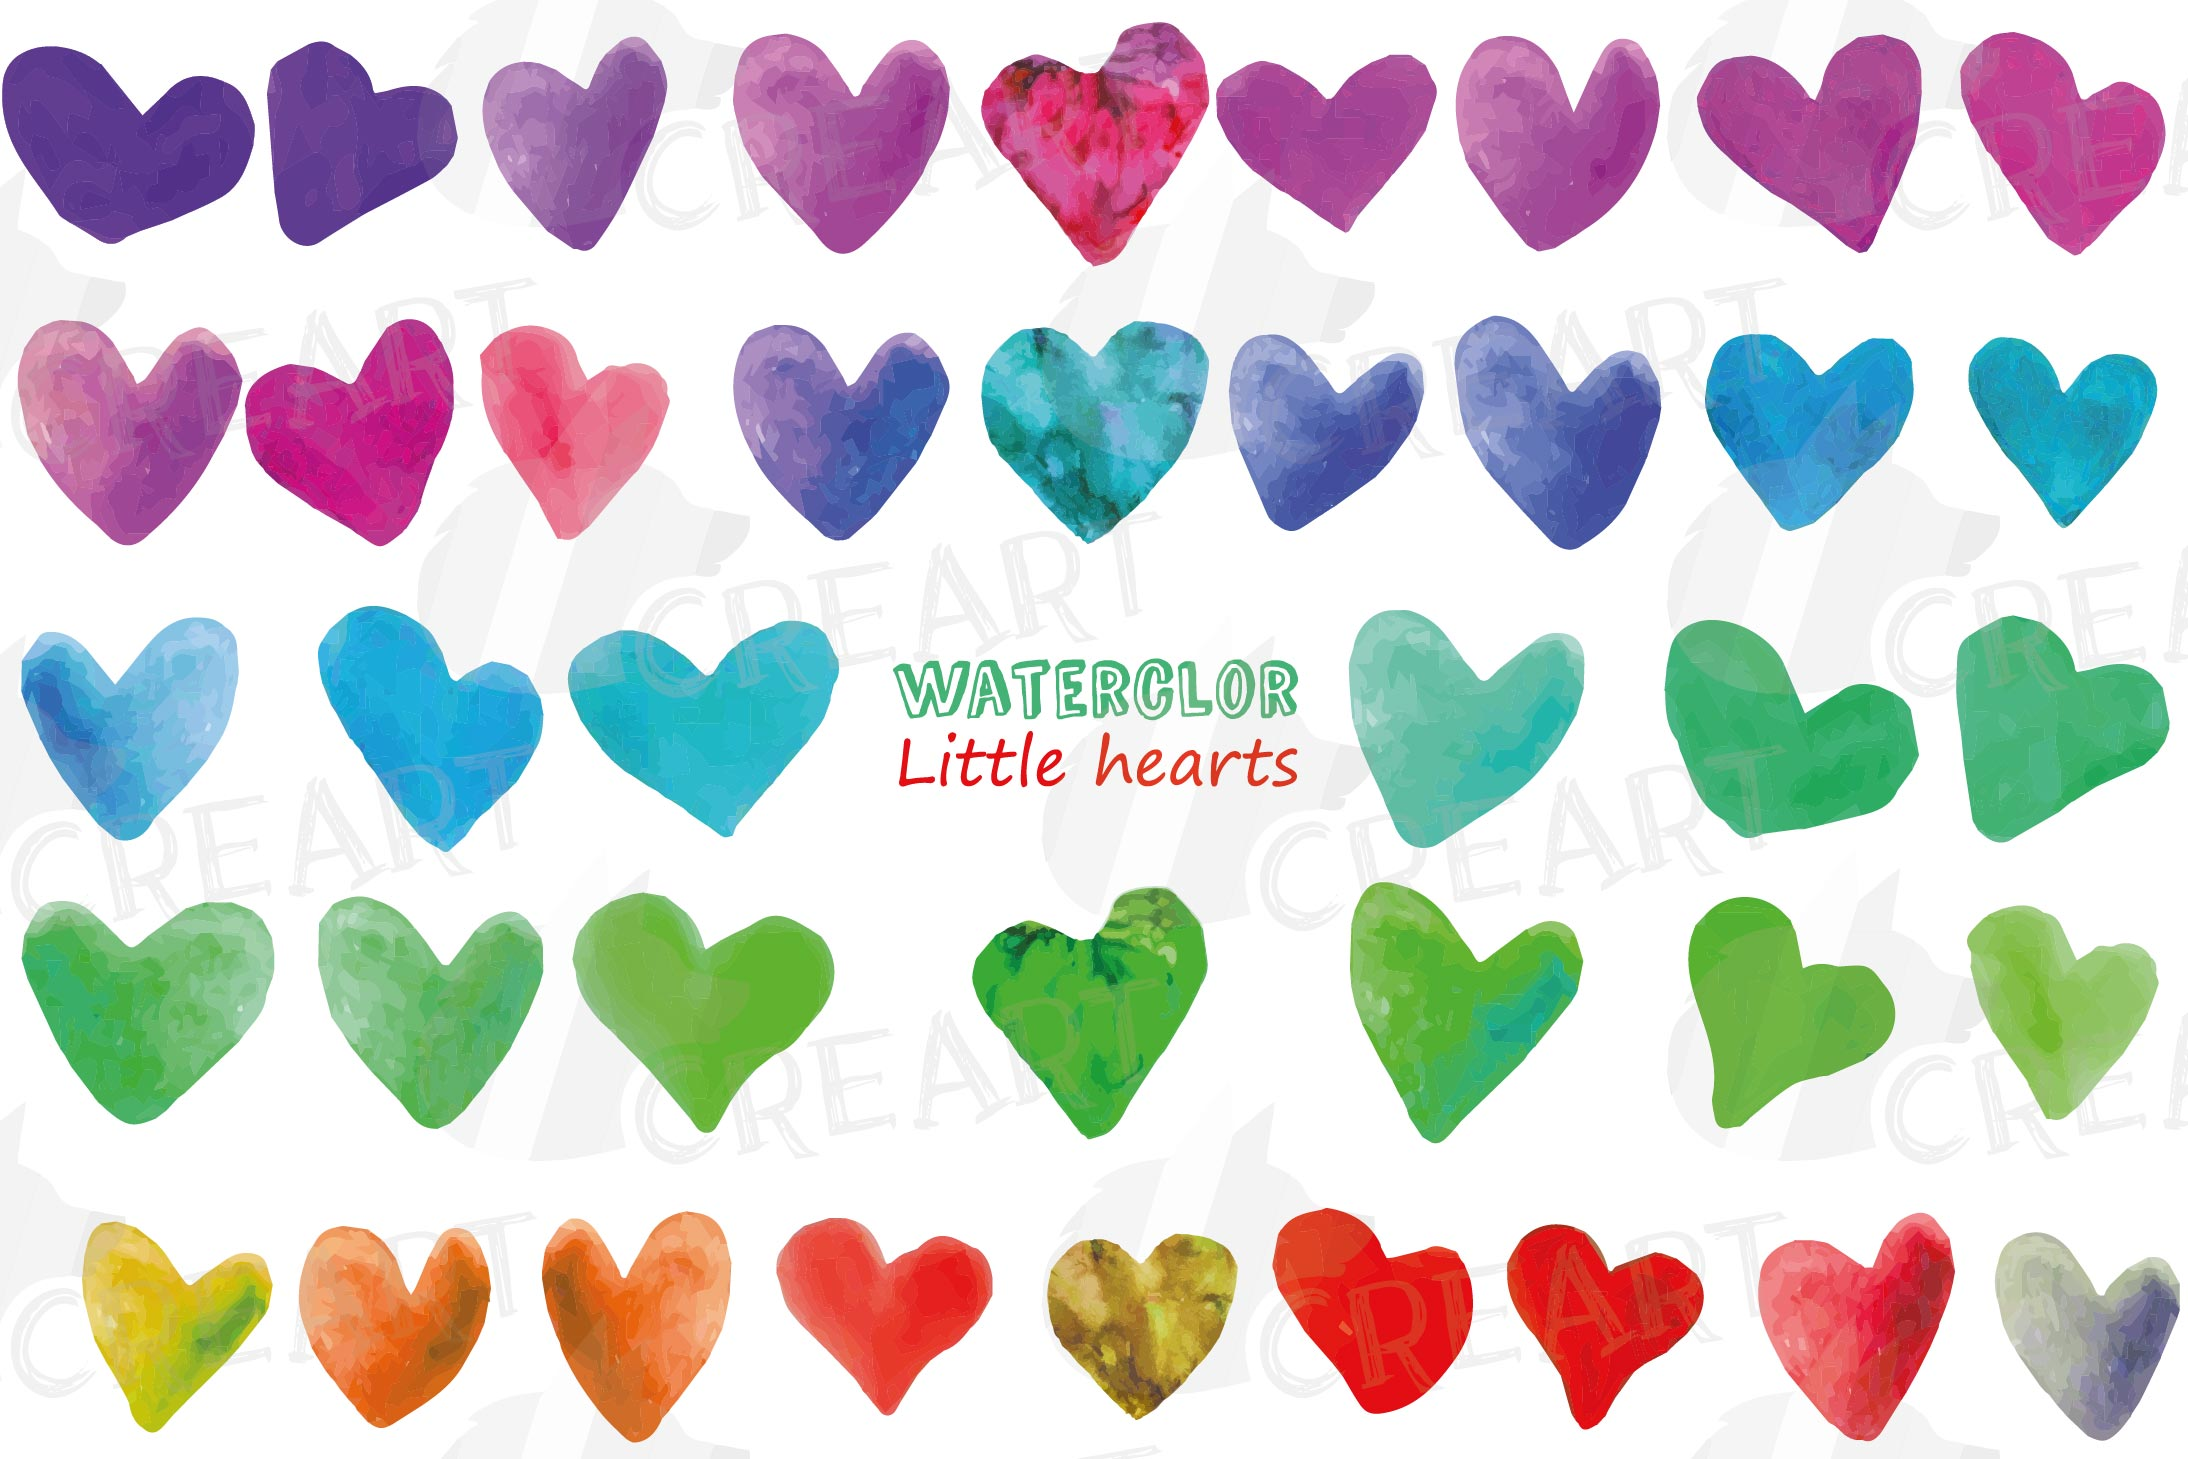 Watercolor little hearts clip art, colorful Valentine example image 2